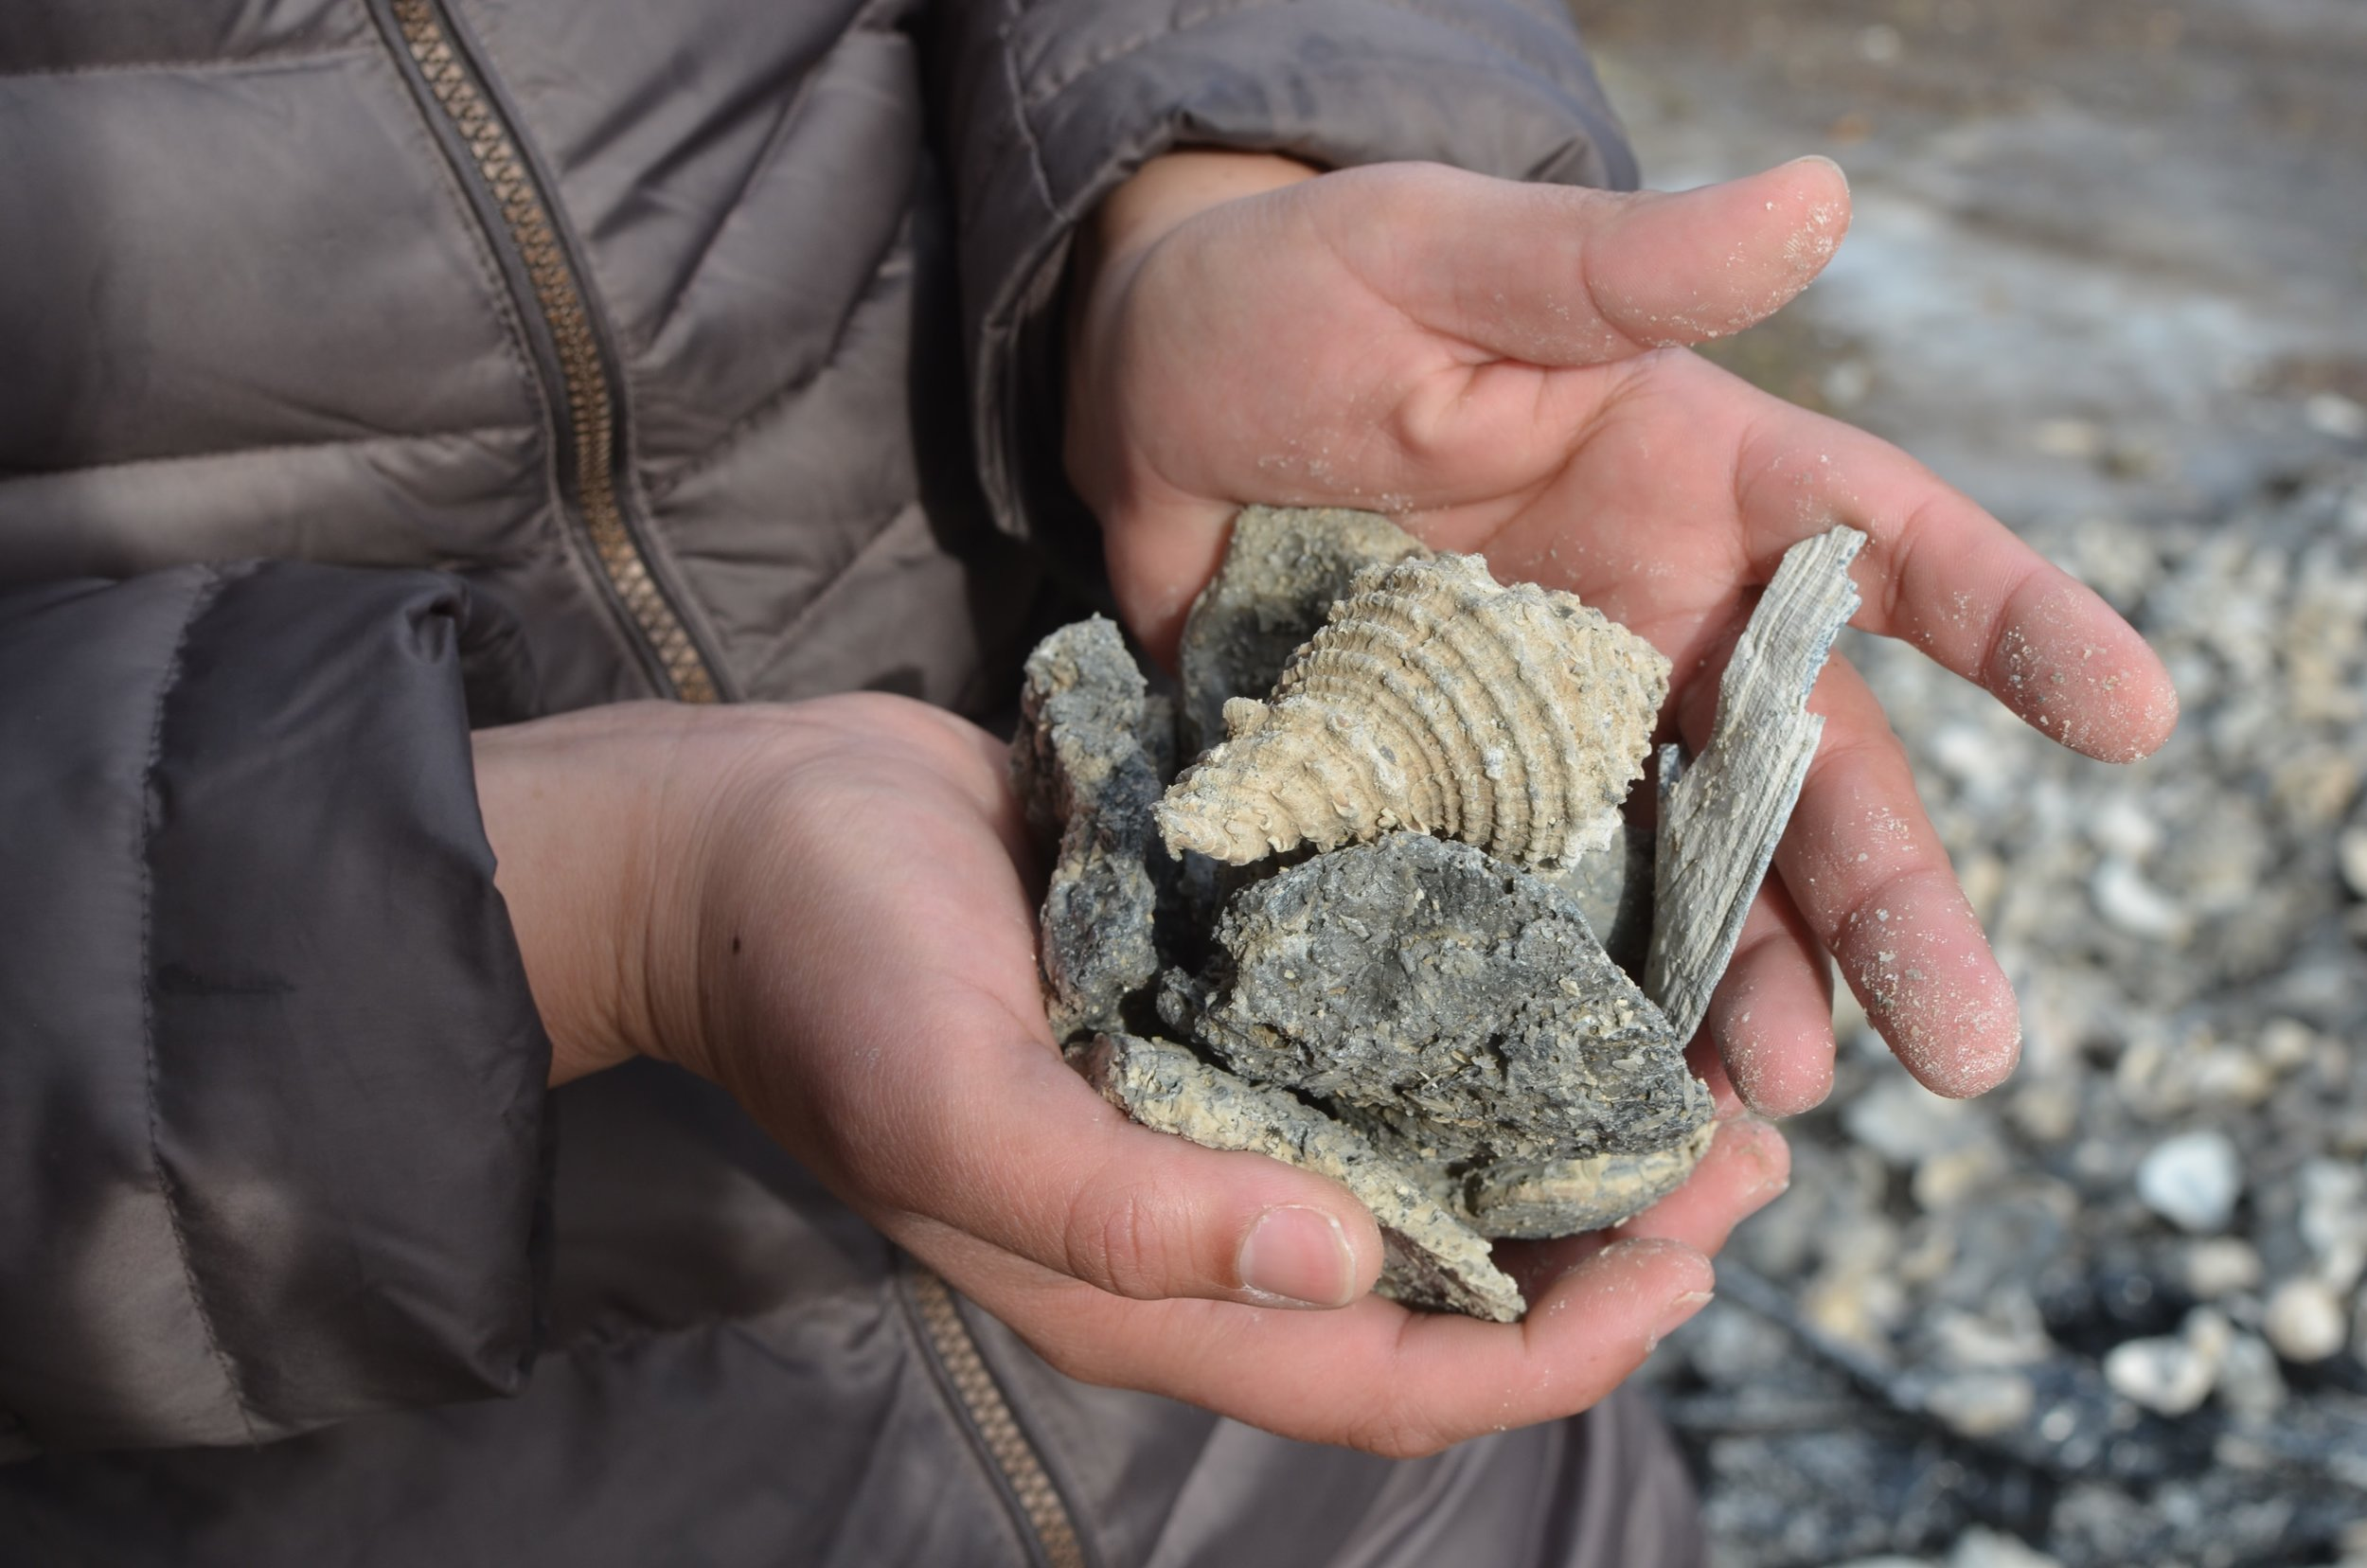 Coastal Habitat Restoration Project Hatchery Technician Nyustash Valdez holds a handful of some calcified shell used as the base of the living oyster reef.